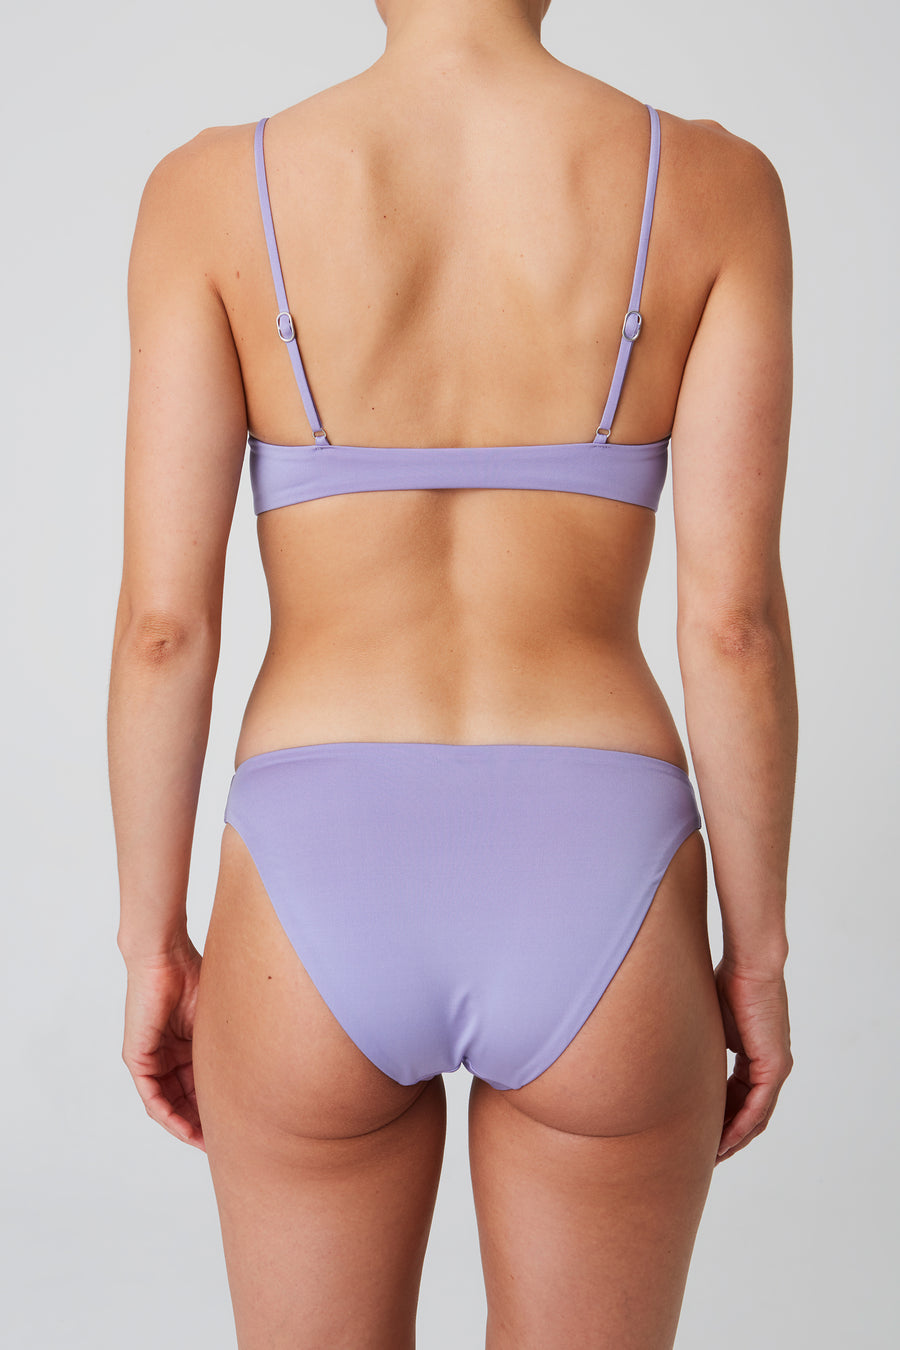 TOP – oval, lavender